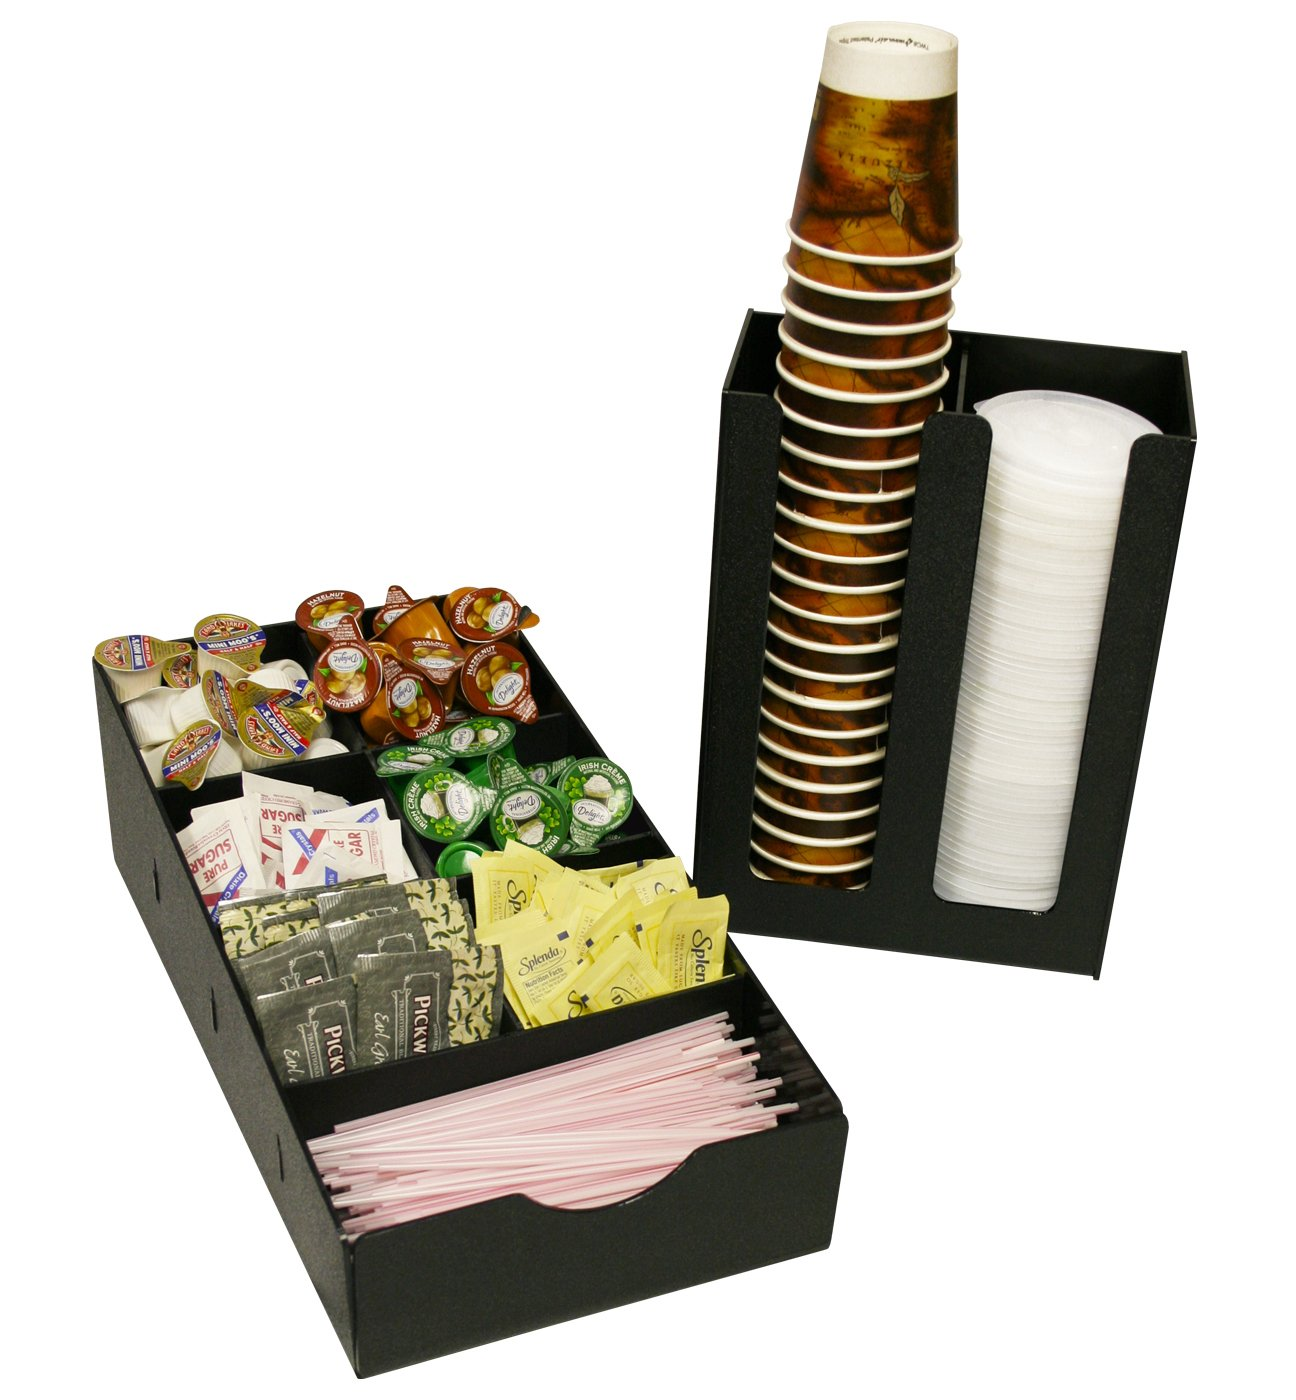 Coffee Organizer and Cup, Lid Holder 2 Piece Combo, One Price. Can be used Separately or Together. Perfect for Organizing Office Breakrooms or Customer Coffee Service. Only 8 1/2'' Wide. Made in the USA! by PPM.